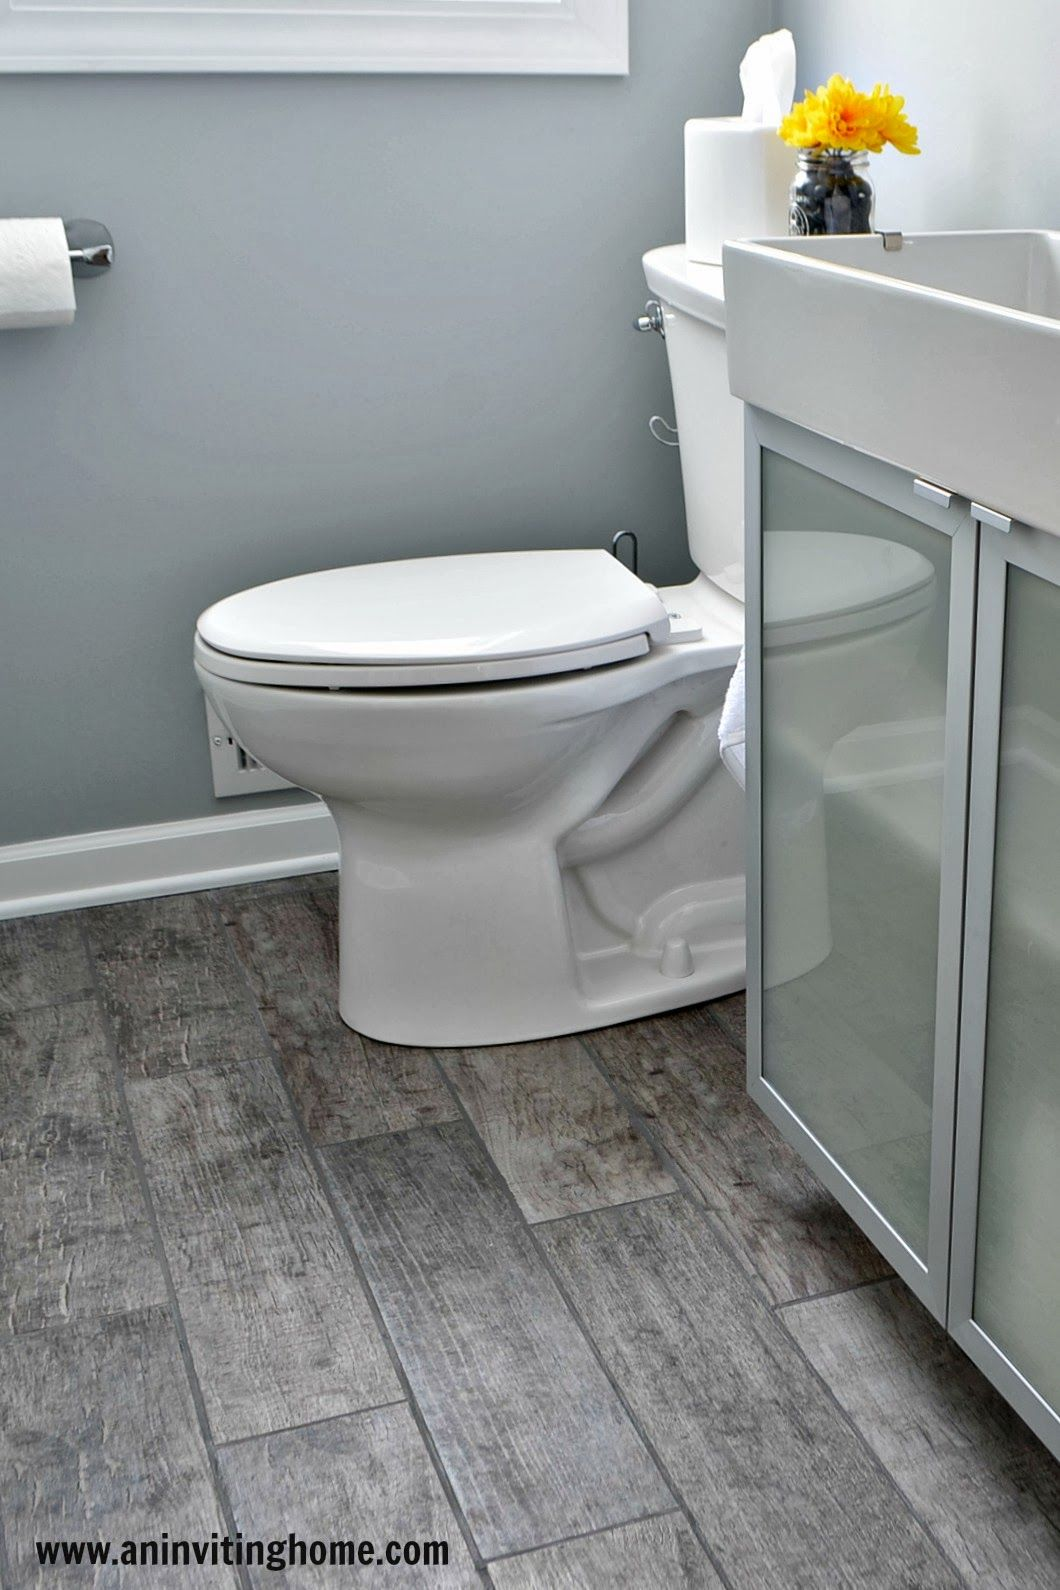 bathroom bathroom wall bathroom sinks wood floor bathroom gray tile